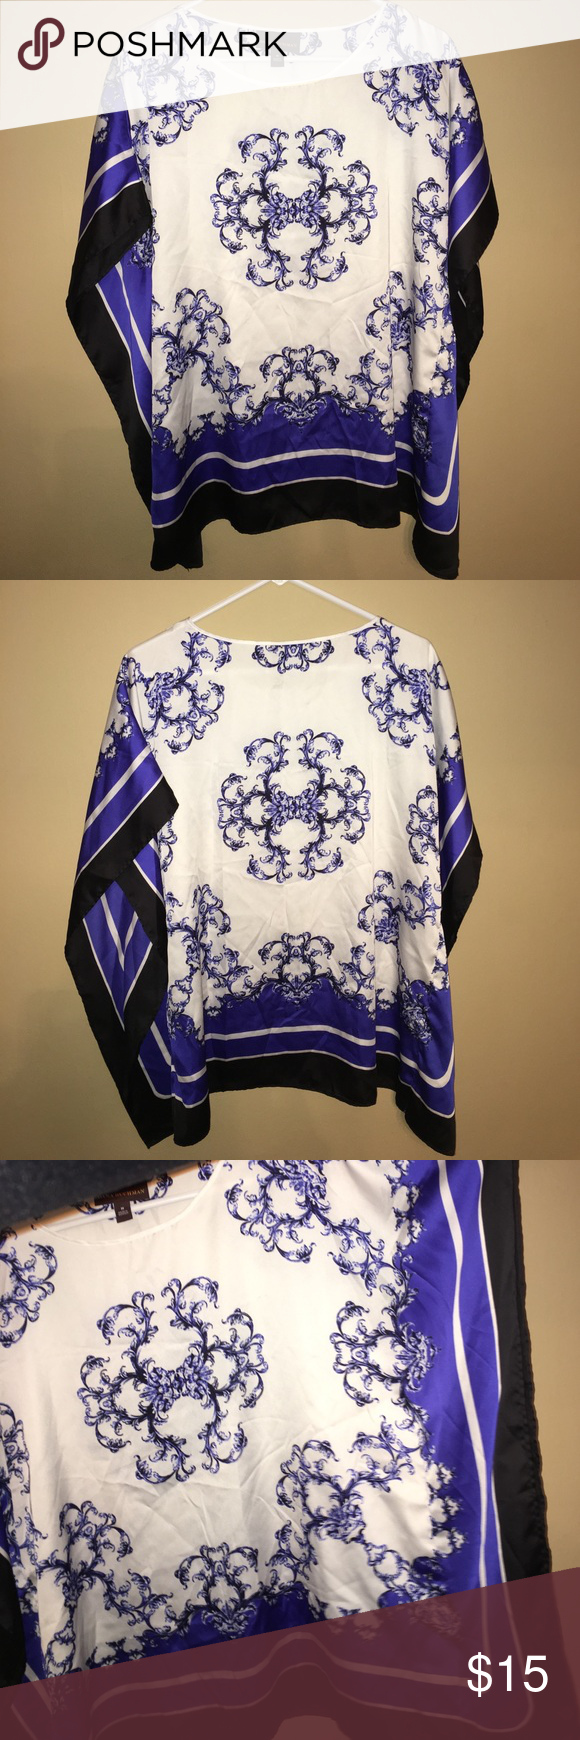 Dana Buchman blouse NEVER WORN! Women's size M. Blue, black and white with loose sleeves. Superrrrr cute! Tops Blouses